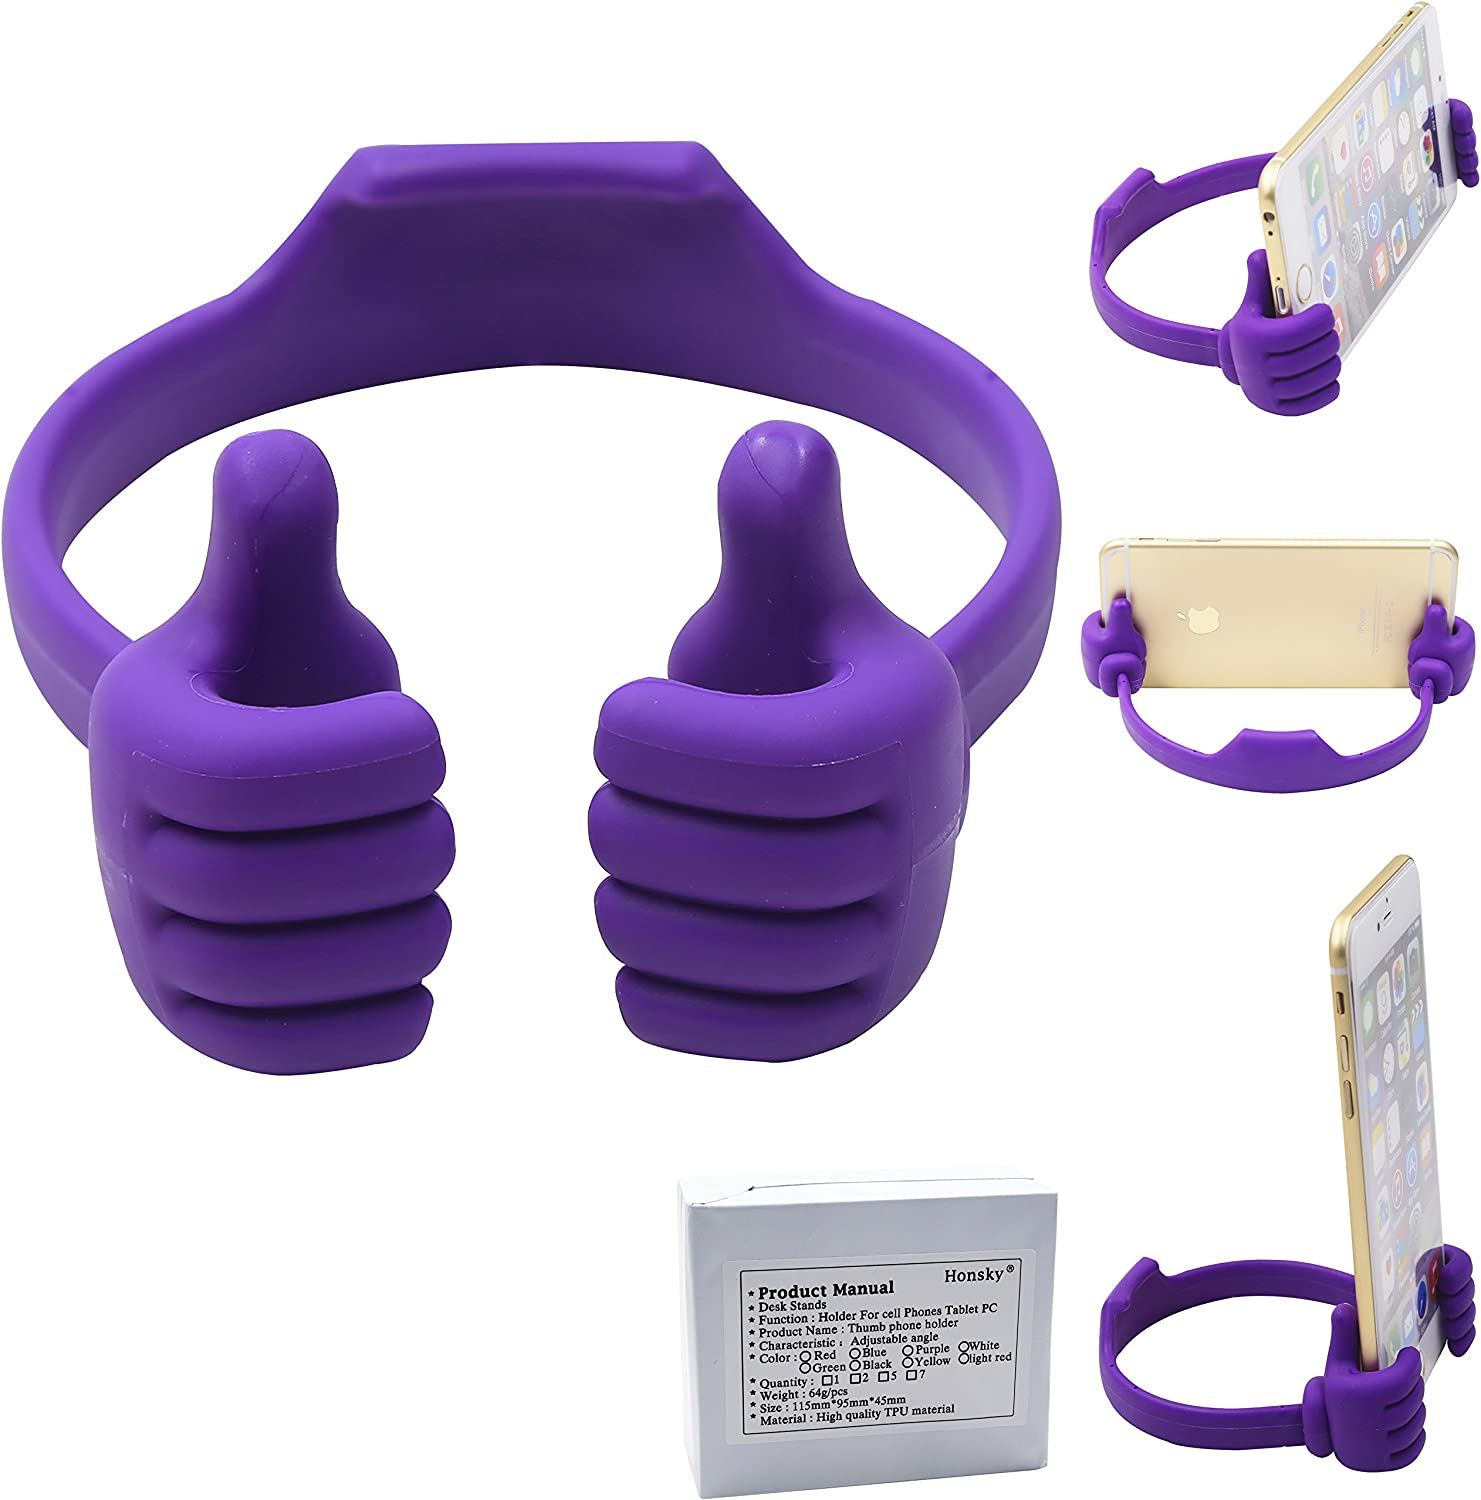 Honsky Popular standard supreme Thumbs-up Cell Phone Stand fo Cradle Tablet Holder